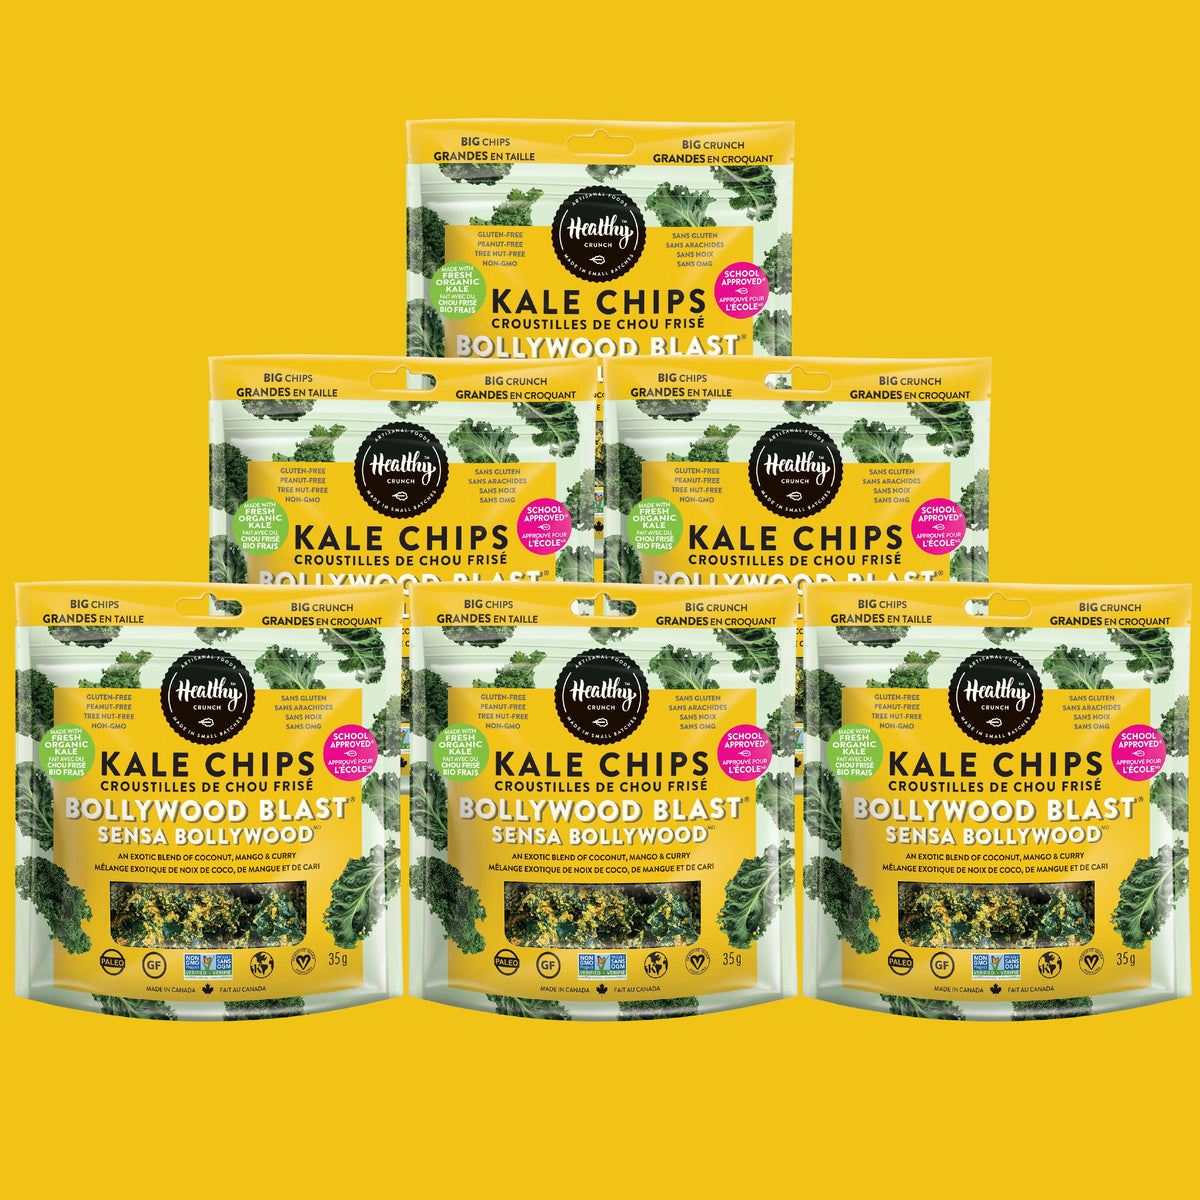 Bollywood Blast Kale Chips